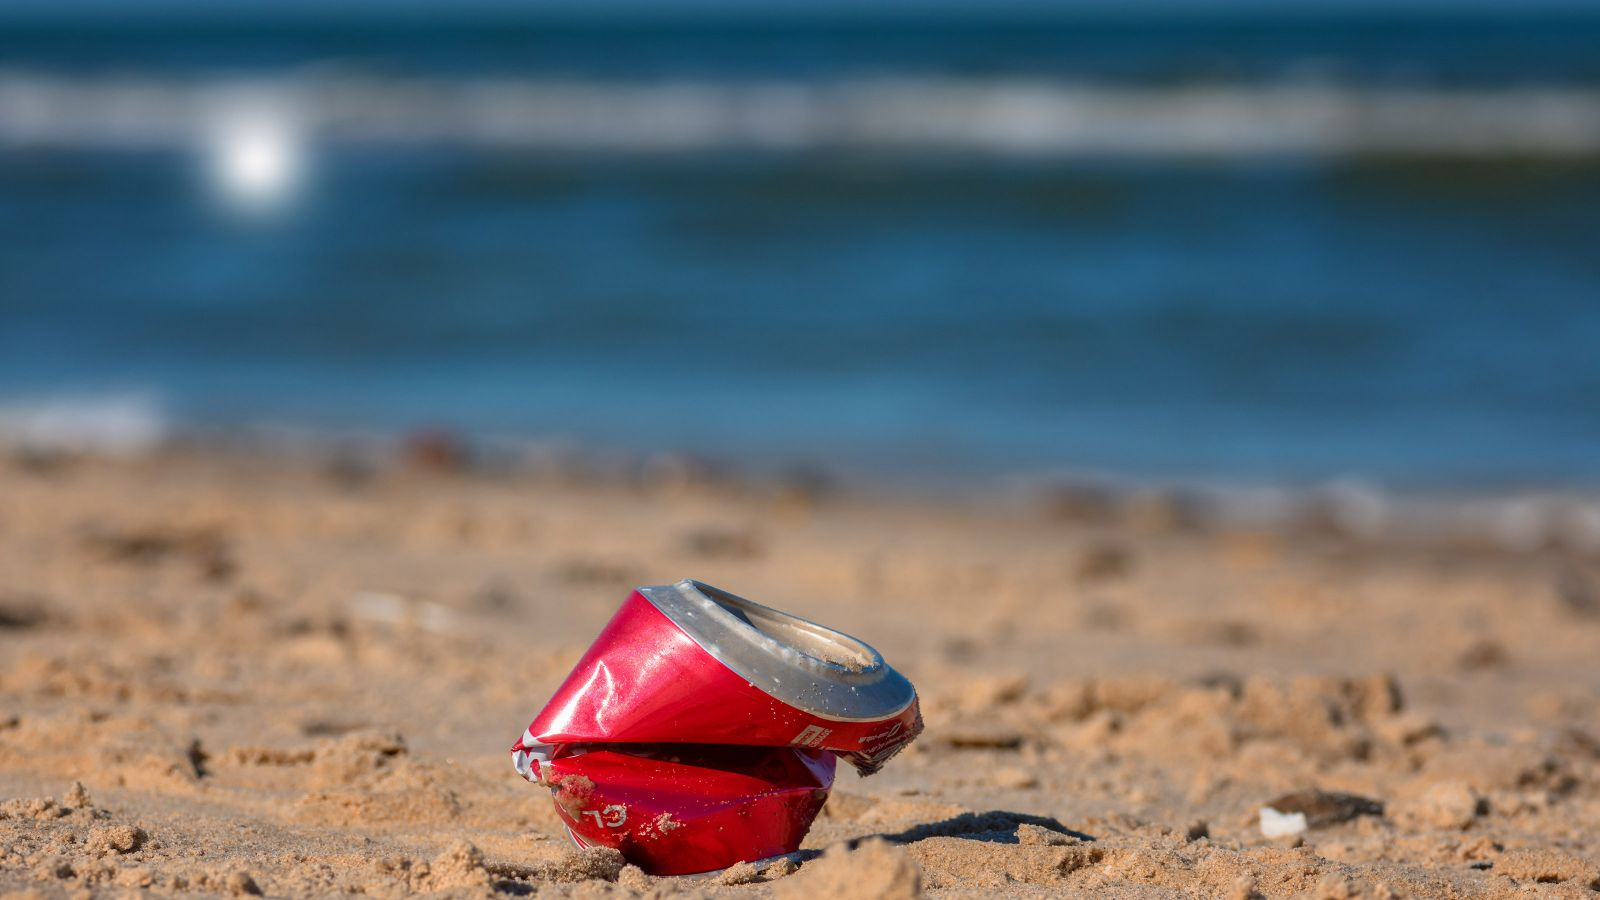 A piece of rubbish on a beach